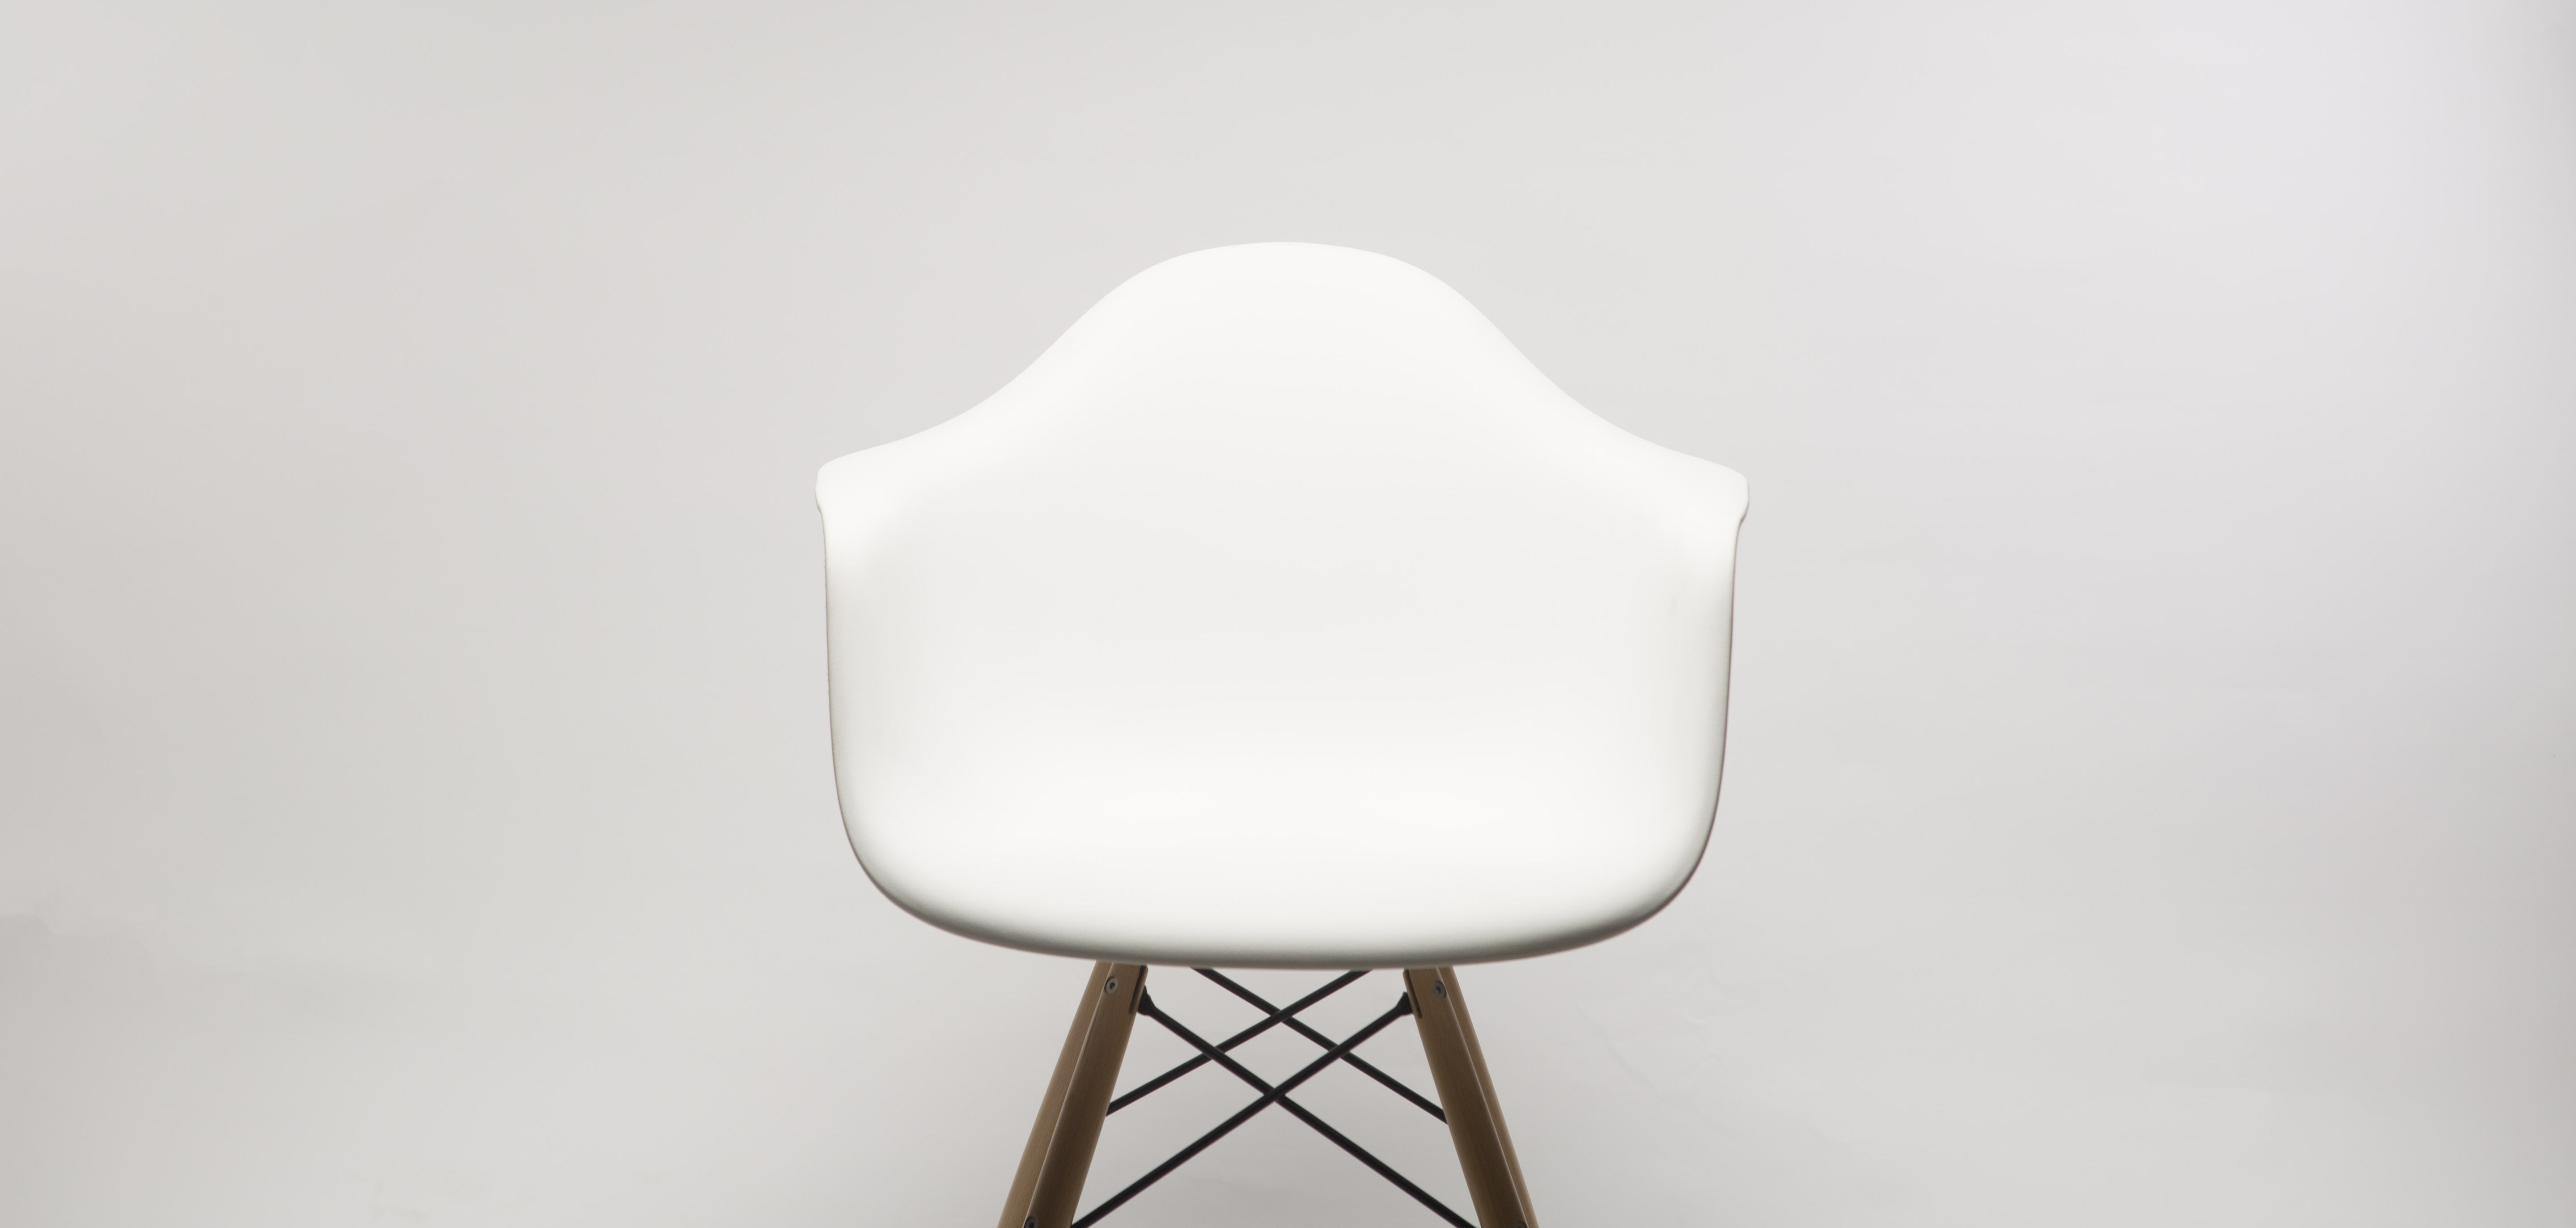 dillon chair 1 2 kelsyus backpack with canopy mangum unsplash photo community white wooden armchair